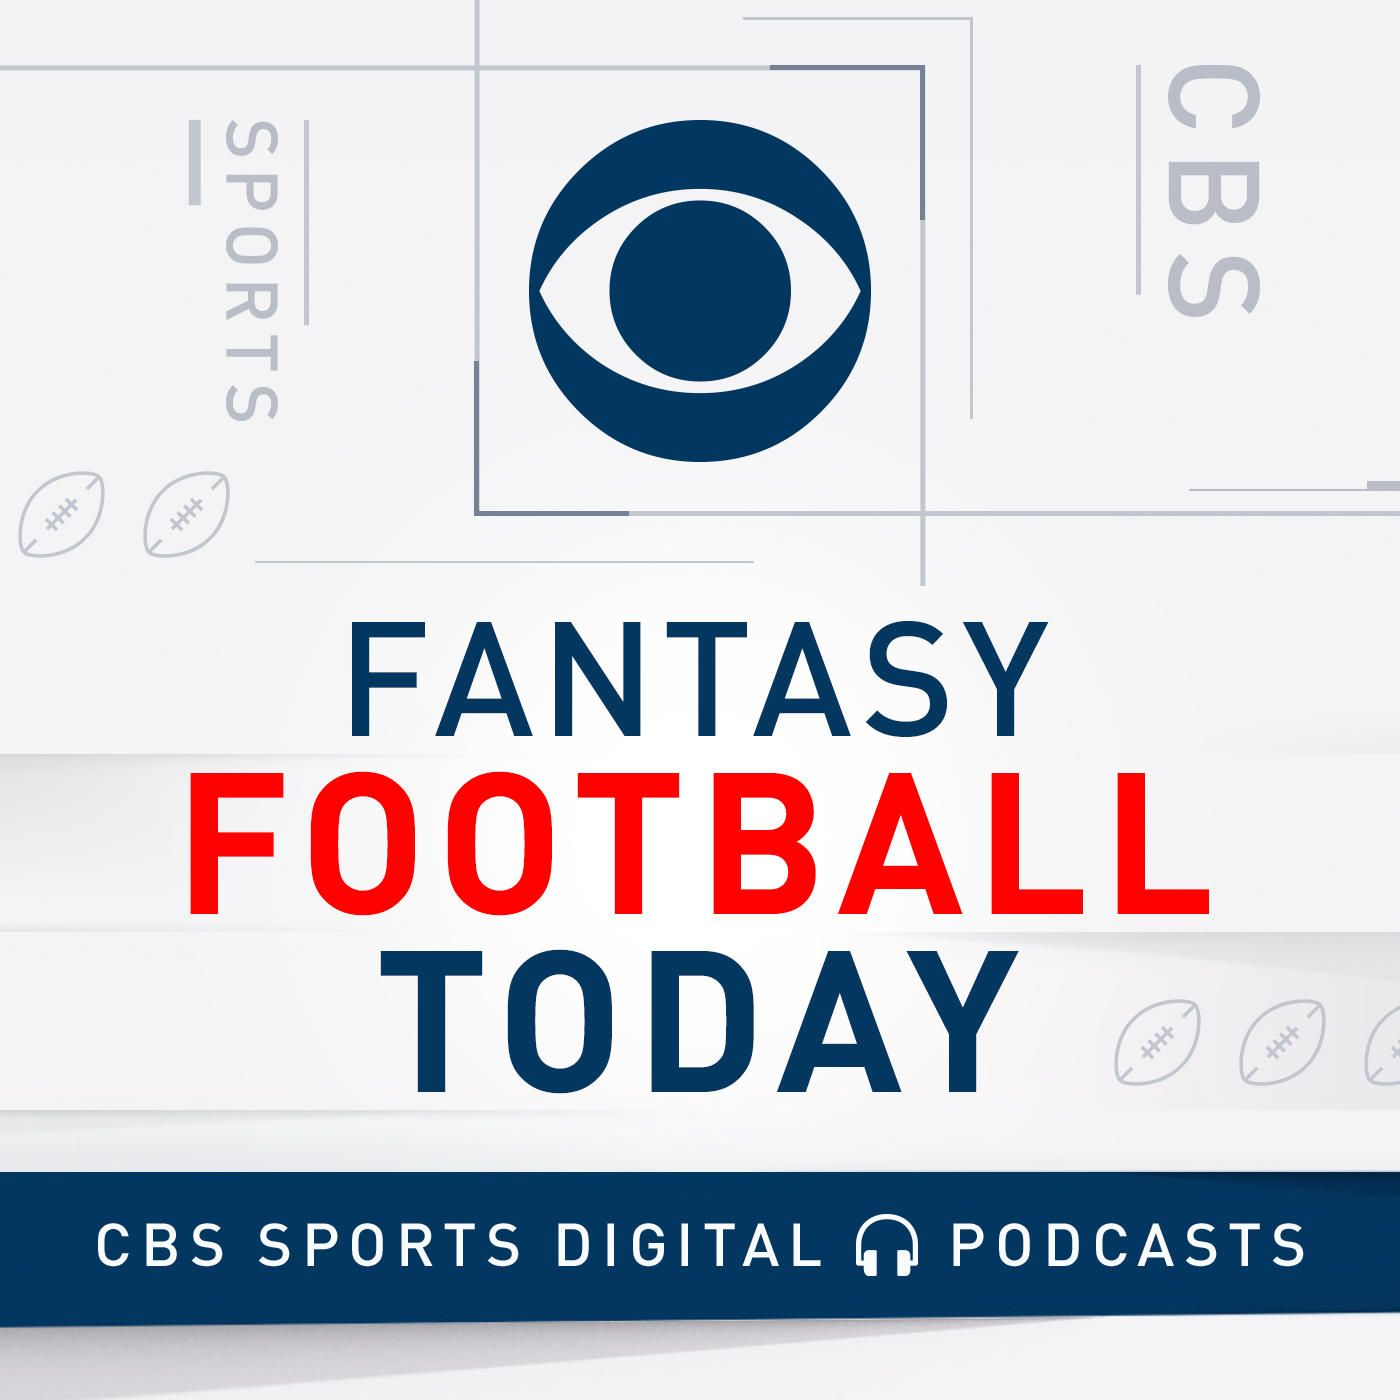 College Basketball Scoreboard Football today, Fantasy